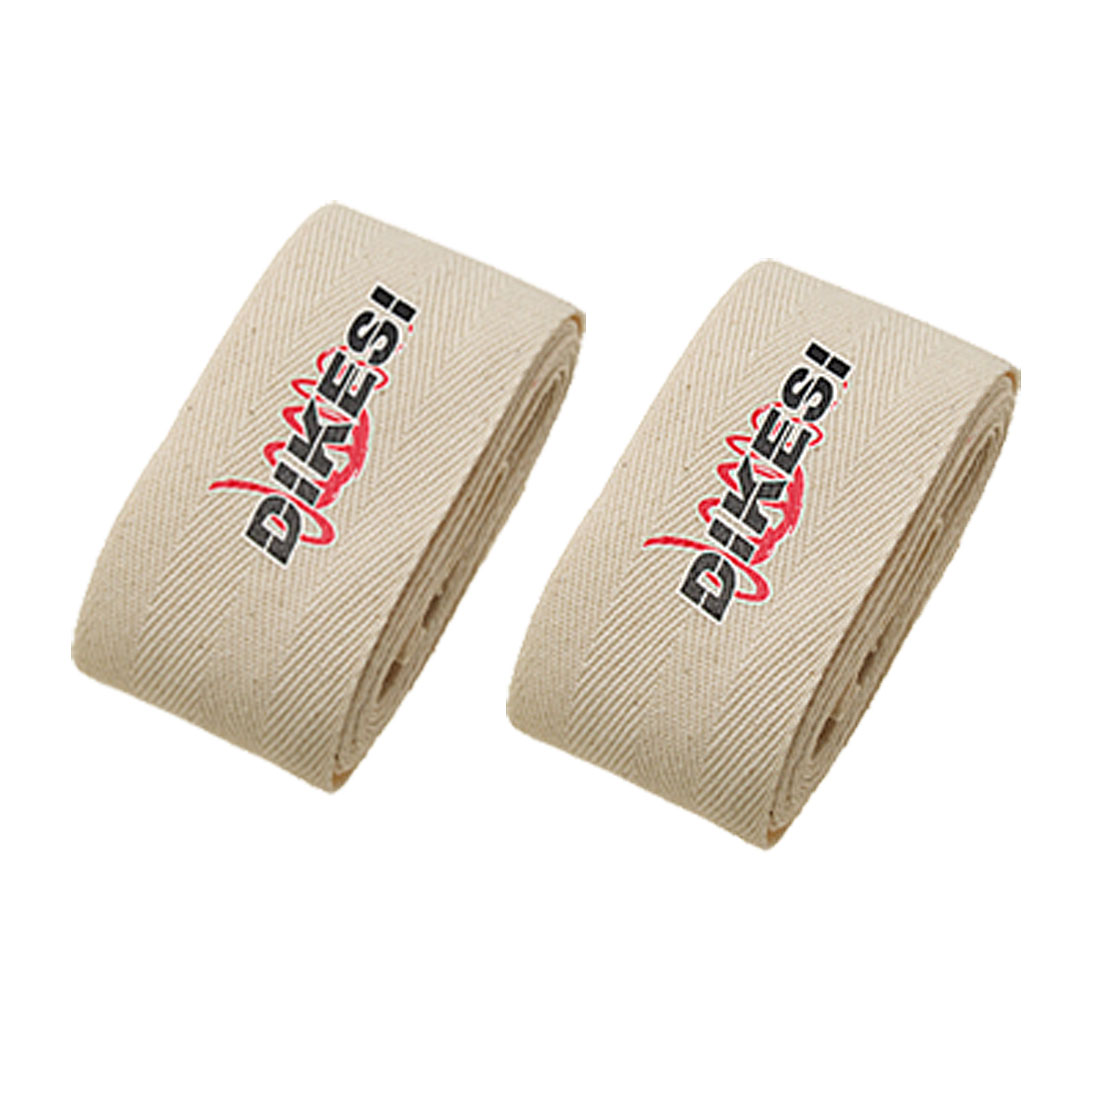 Boxing Kick Martial Arts Hand Palm Wrist Wrap Bandage PAIR Beige